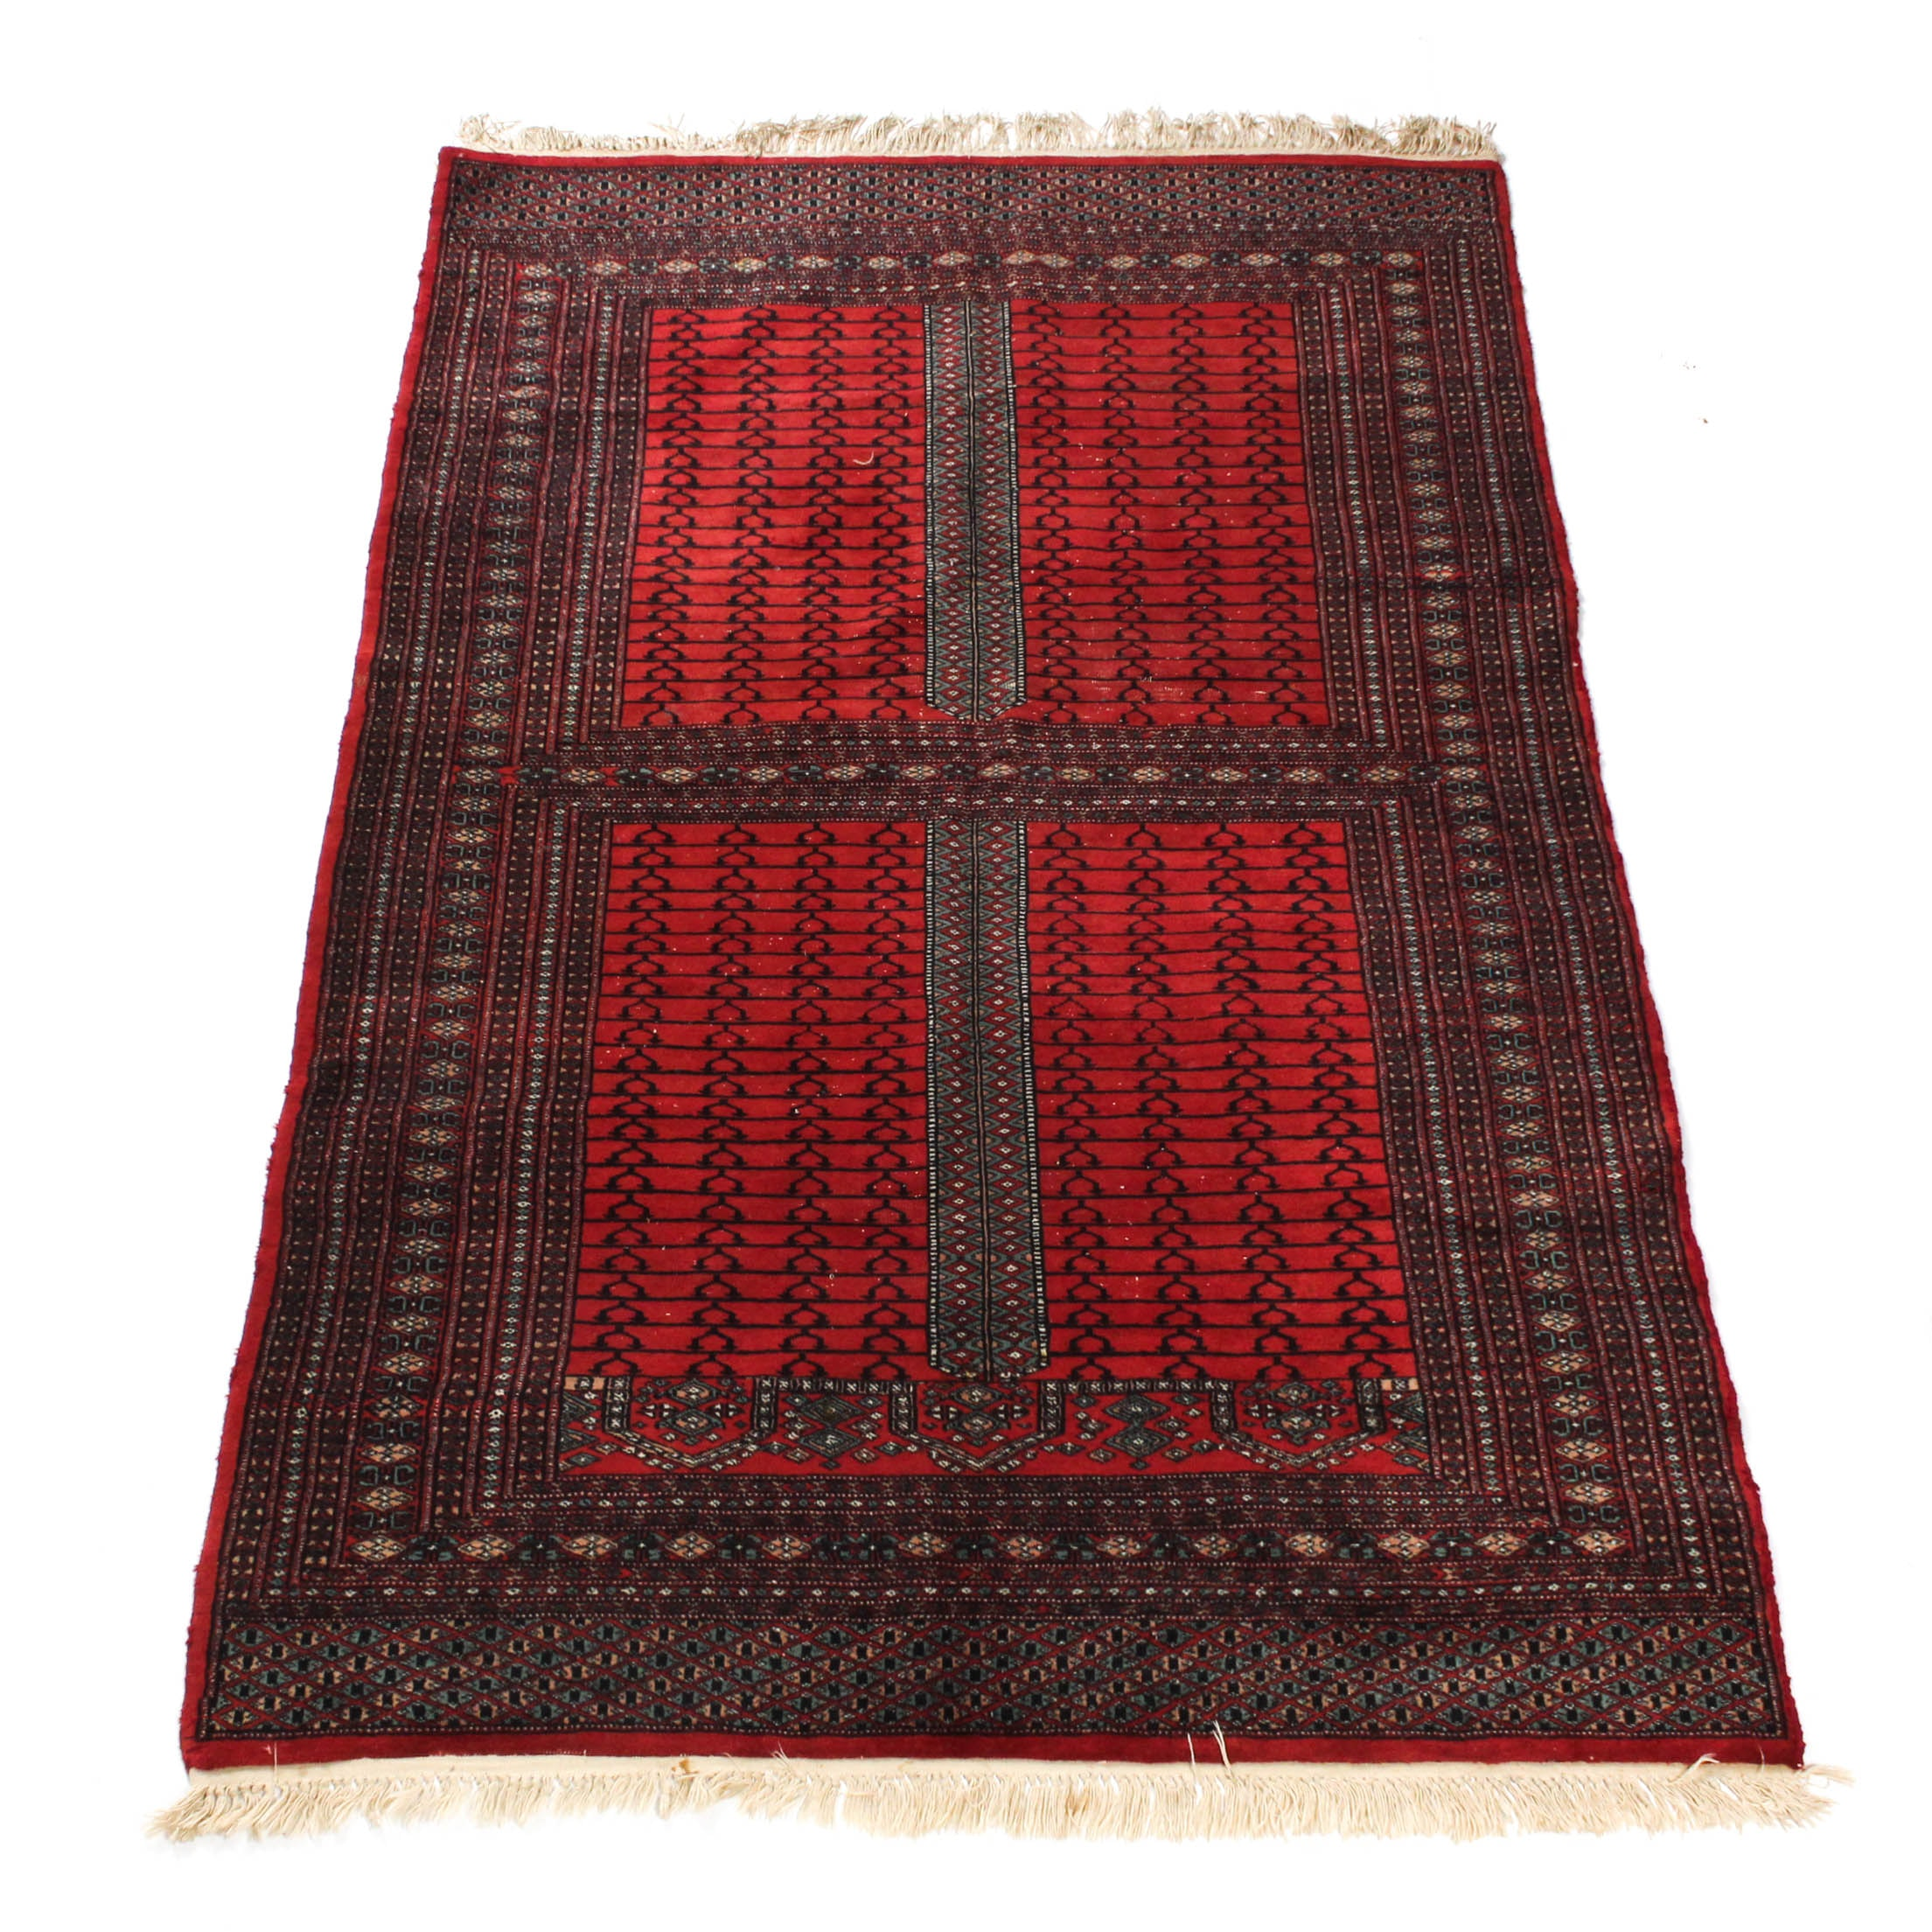 Semi-Antique Hand Knotted Pakistani Turkoman Bokhara Rug